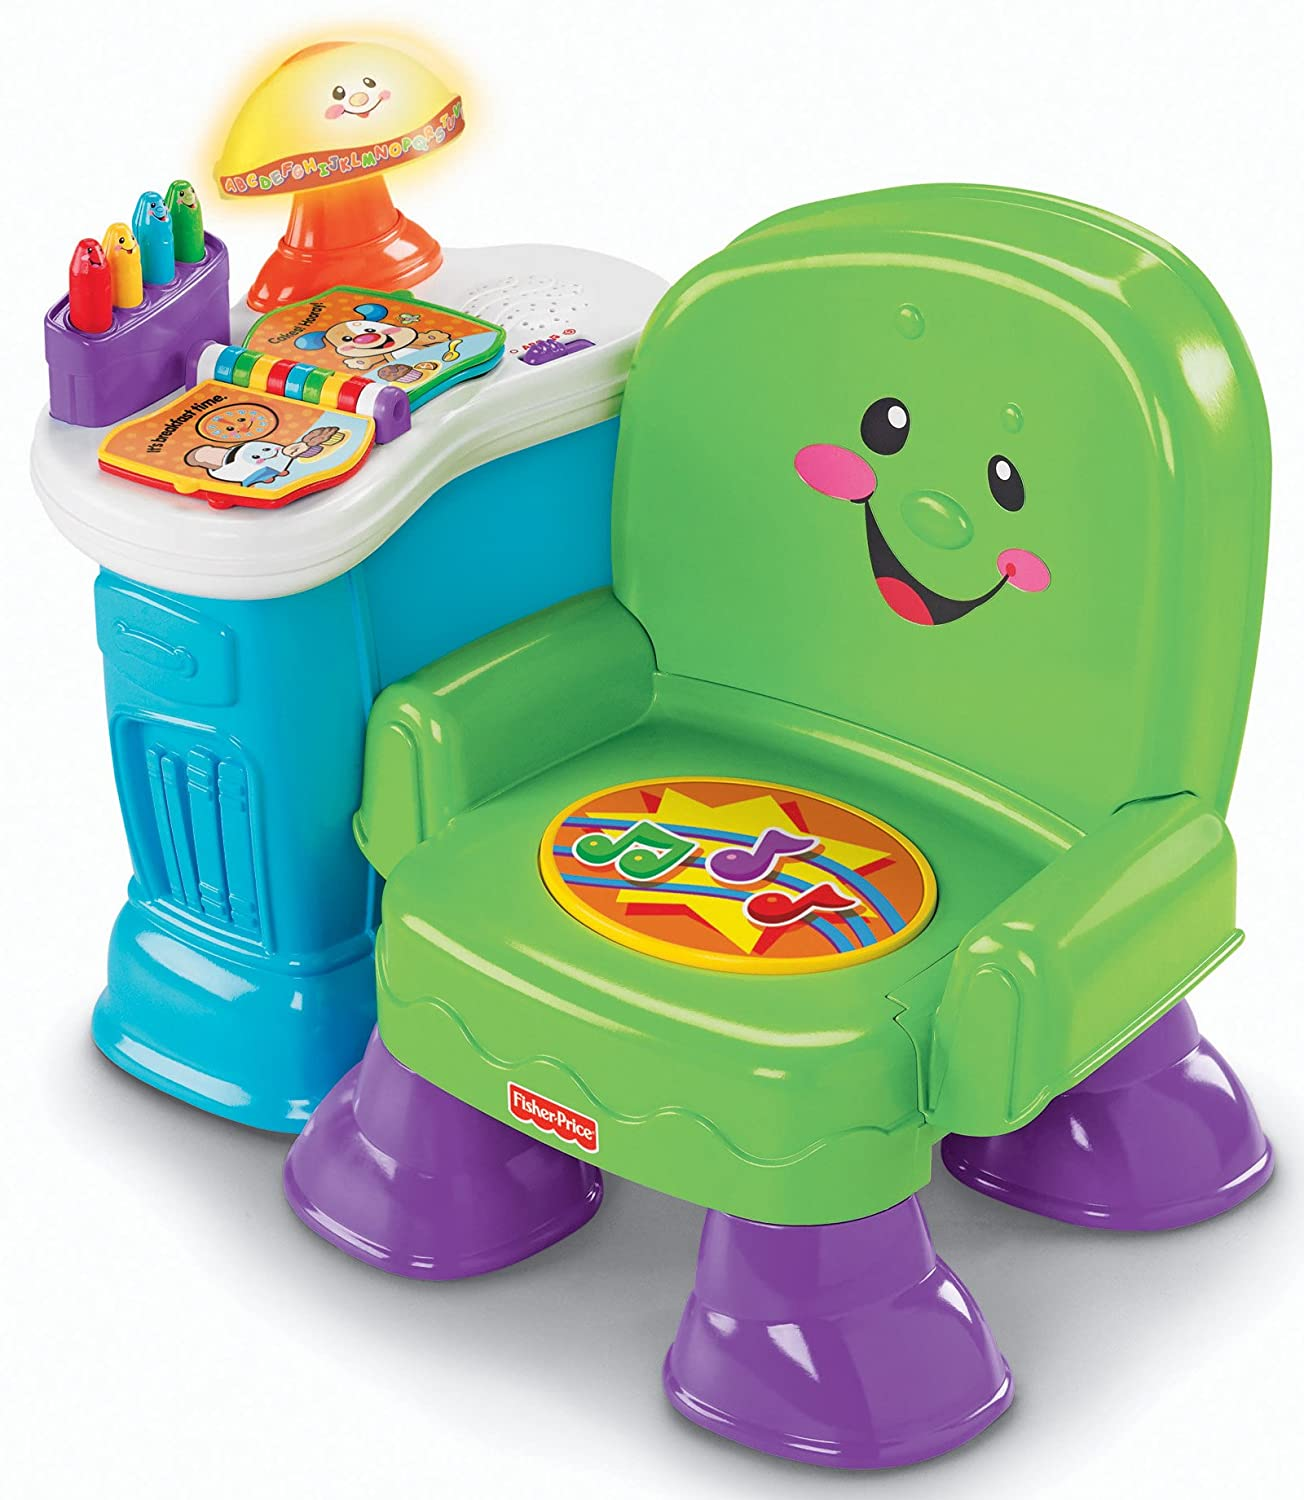 Fisher price smart stages chair - Fisher Price Laugh Learn Musical Learning Chair Green Amazon Co Uk Toys Games